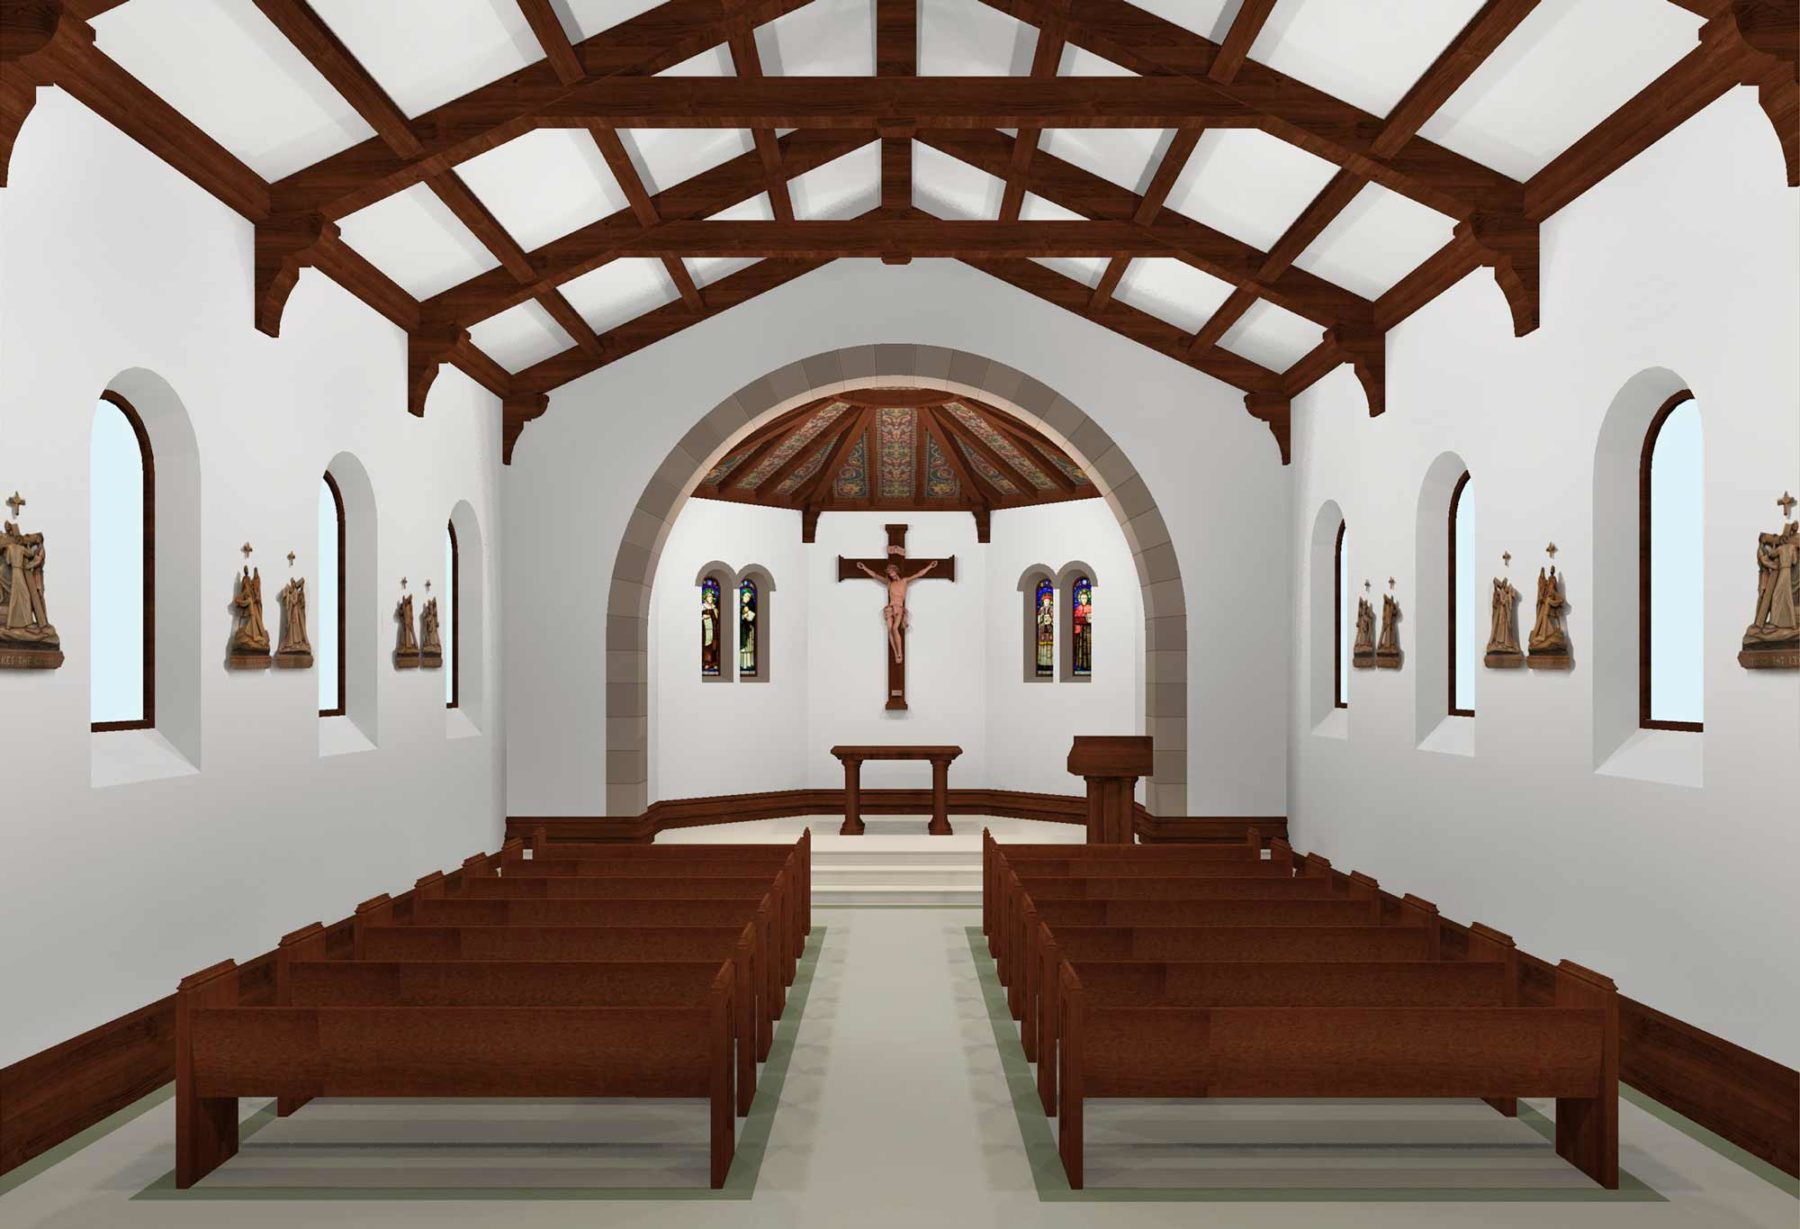 Daily mass chapel exposed wooden beam ceiling bracket stations of the cross and arch stain glass windows by Harrison Design